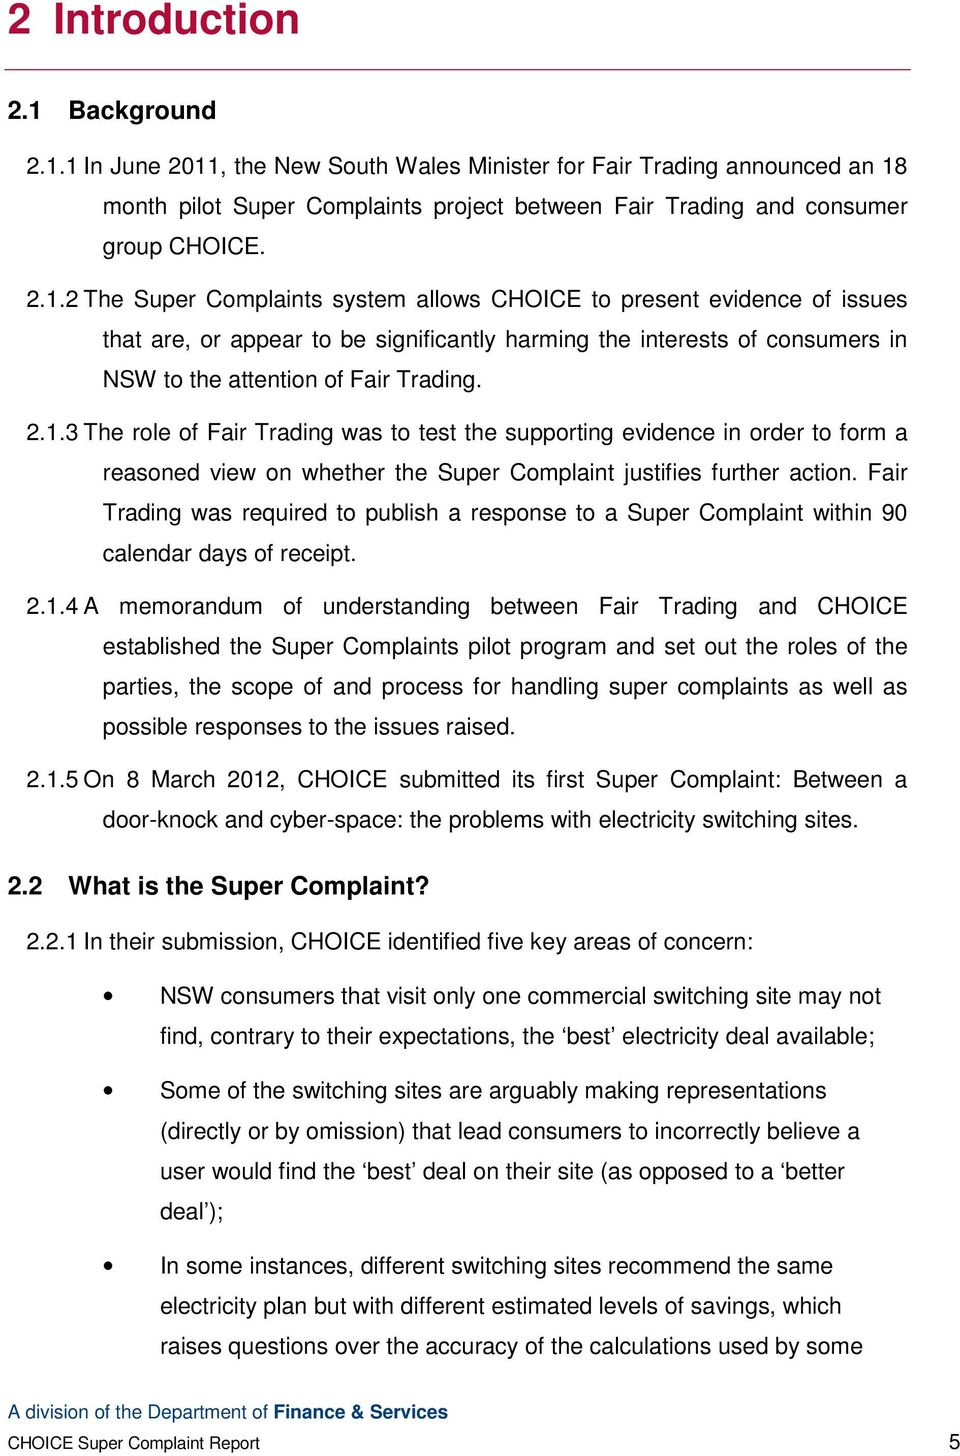 1 In June 2011, the New South Wales Minister for Fair Trading announced an 18 month pilot Super Complaints project between Fair Trading and consumer group CHOICE. 2.1.2 The Super Complaints system allows CHOICE to present evidence of issues that are, or appear to be significantly harming the interests of consumers in NSW to the attention of Fair Trading.